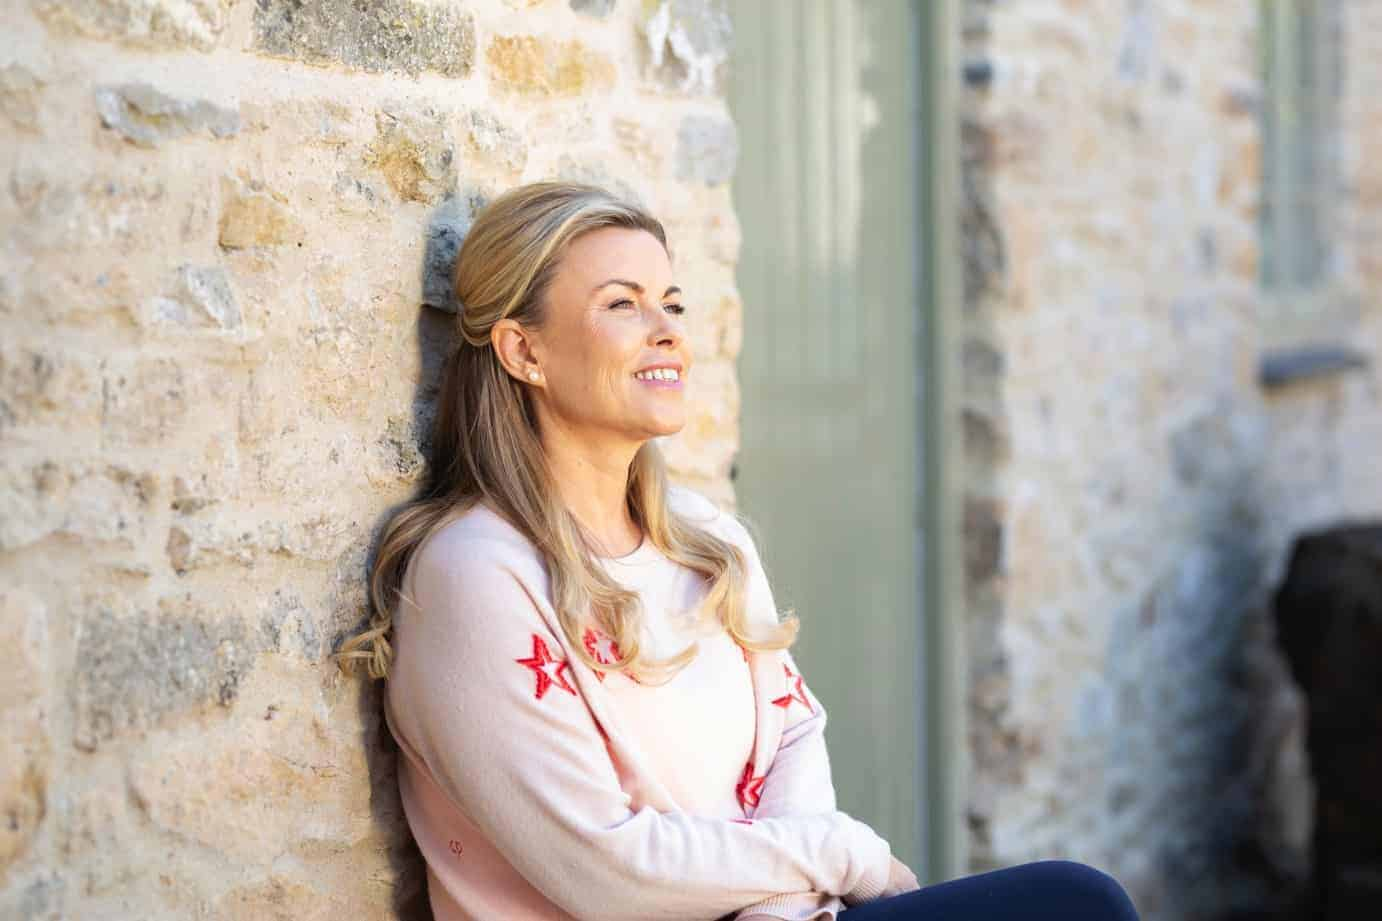 Meet the Experts: Katie Brindle, Chinese Medicine Practitioner, Author & Founder of Hayo'u